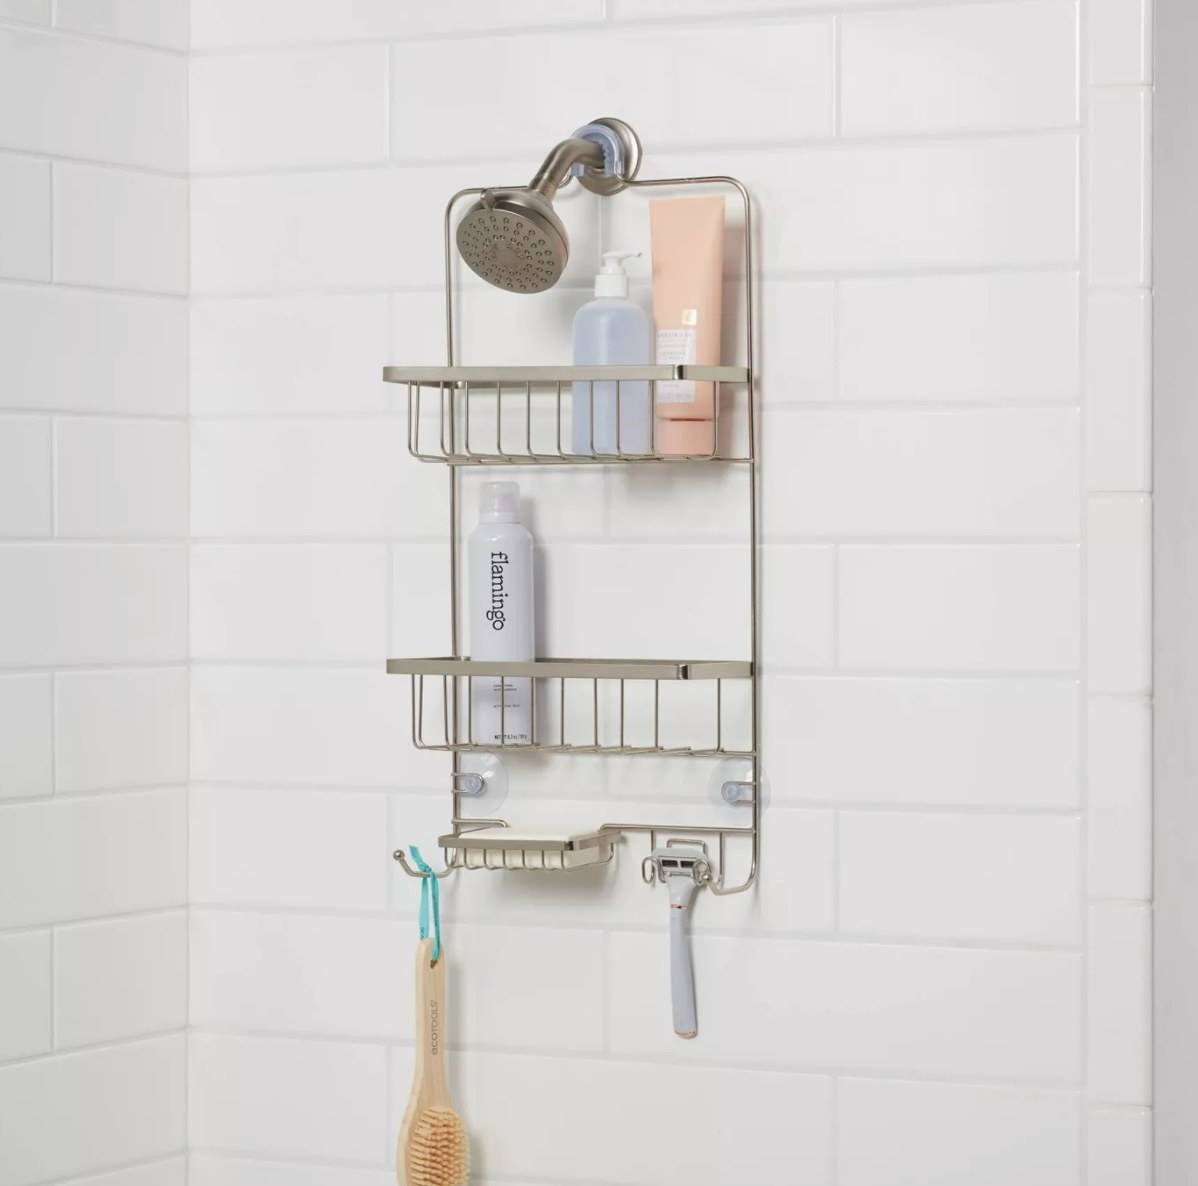 A metal shower caddy with two shelves, hooks, and a soap dish